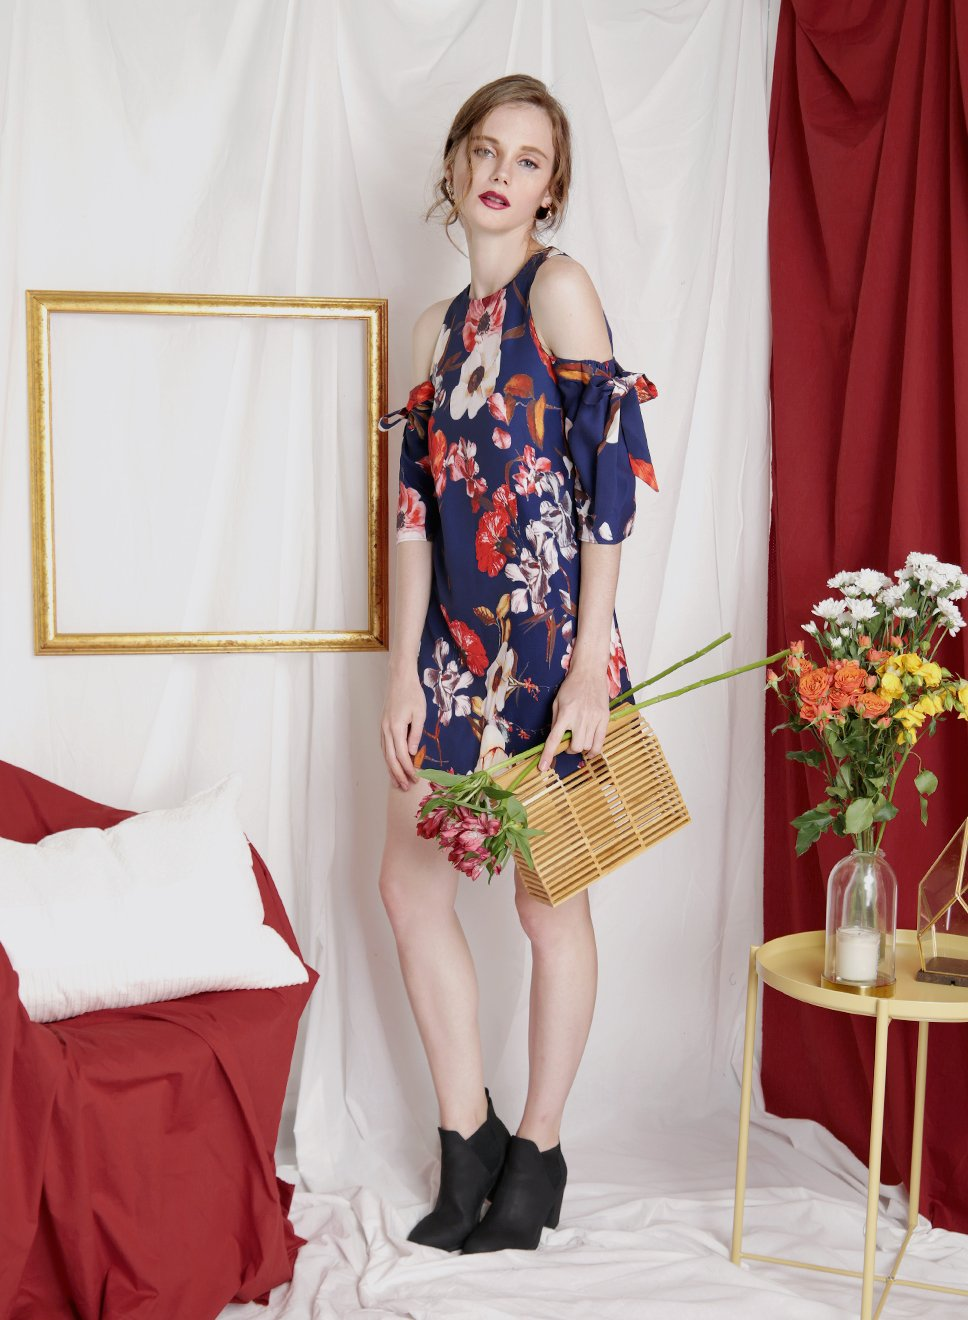 TRANSCEND Cold Shoulder Floral Dress (Navy) at $ 31.50 only sold at And Well Dressed Online Fashion Store Singapore